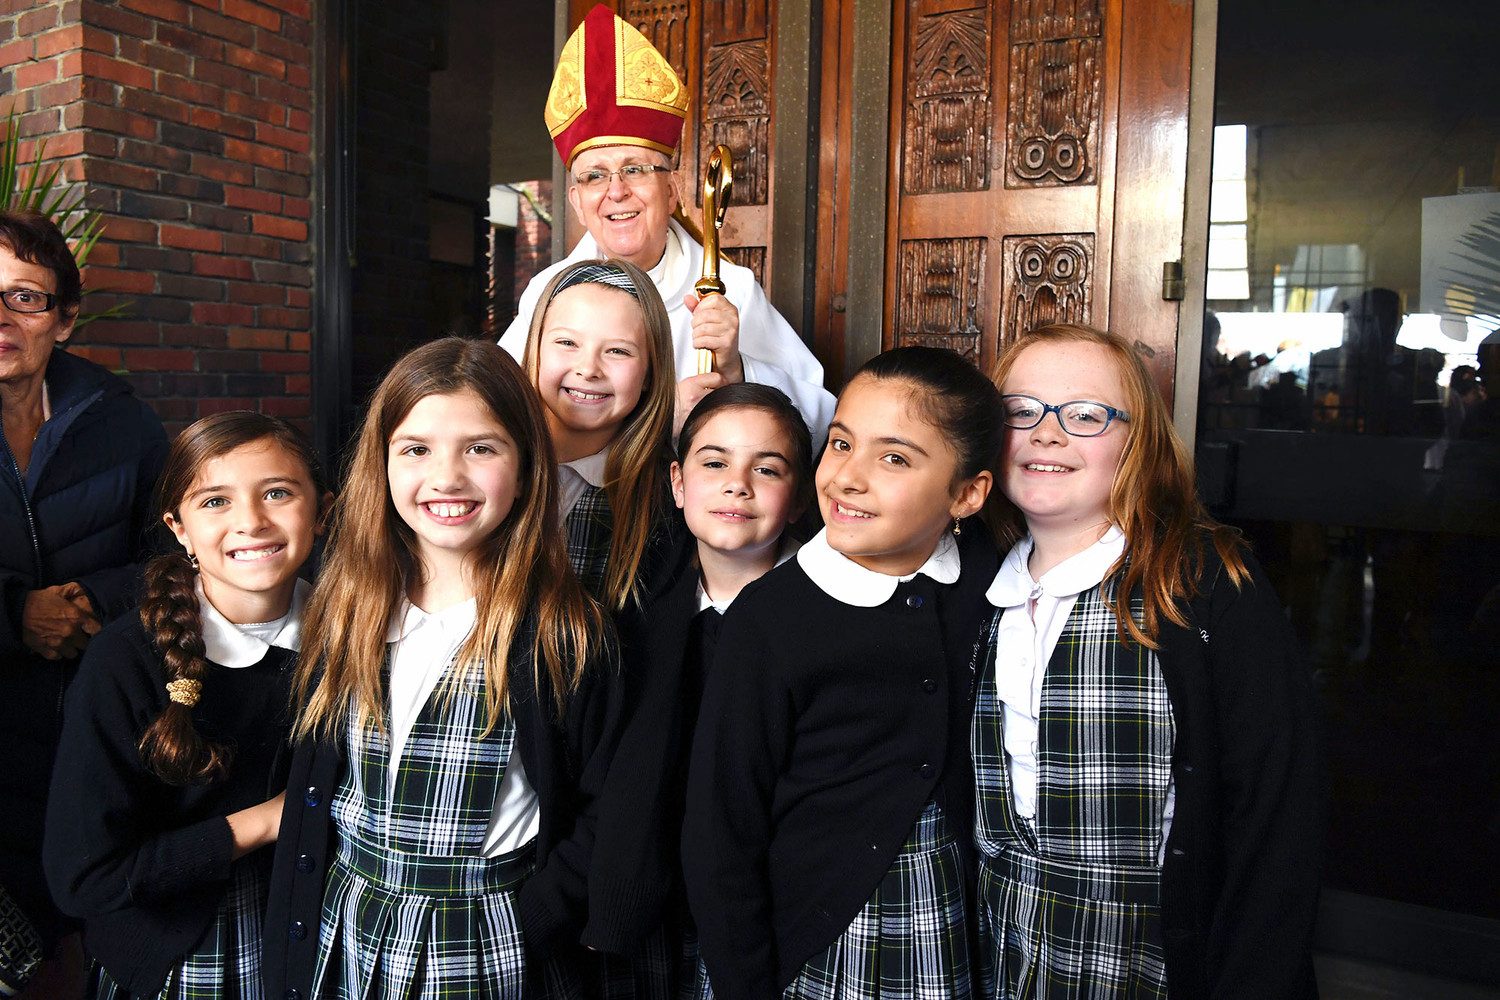 uxiliary Bishop John O'Hara gathers with students of Our Lady of Good Counsel School on Staten Island after celebrating the 50th anniversary of the first Mass in Good Counsel's present church on April 29.